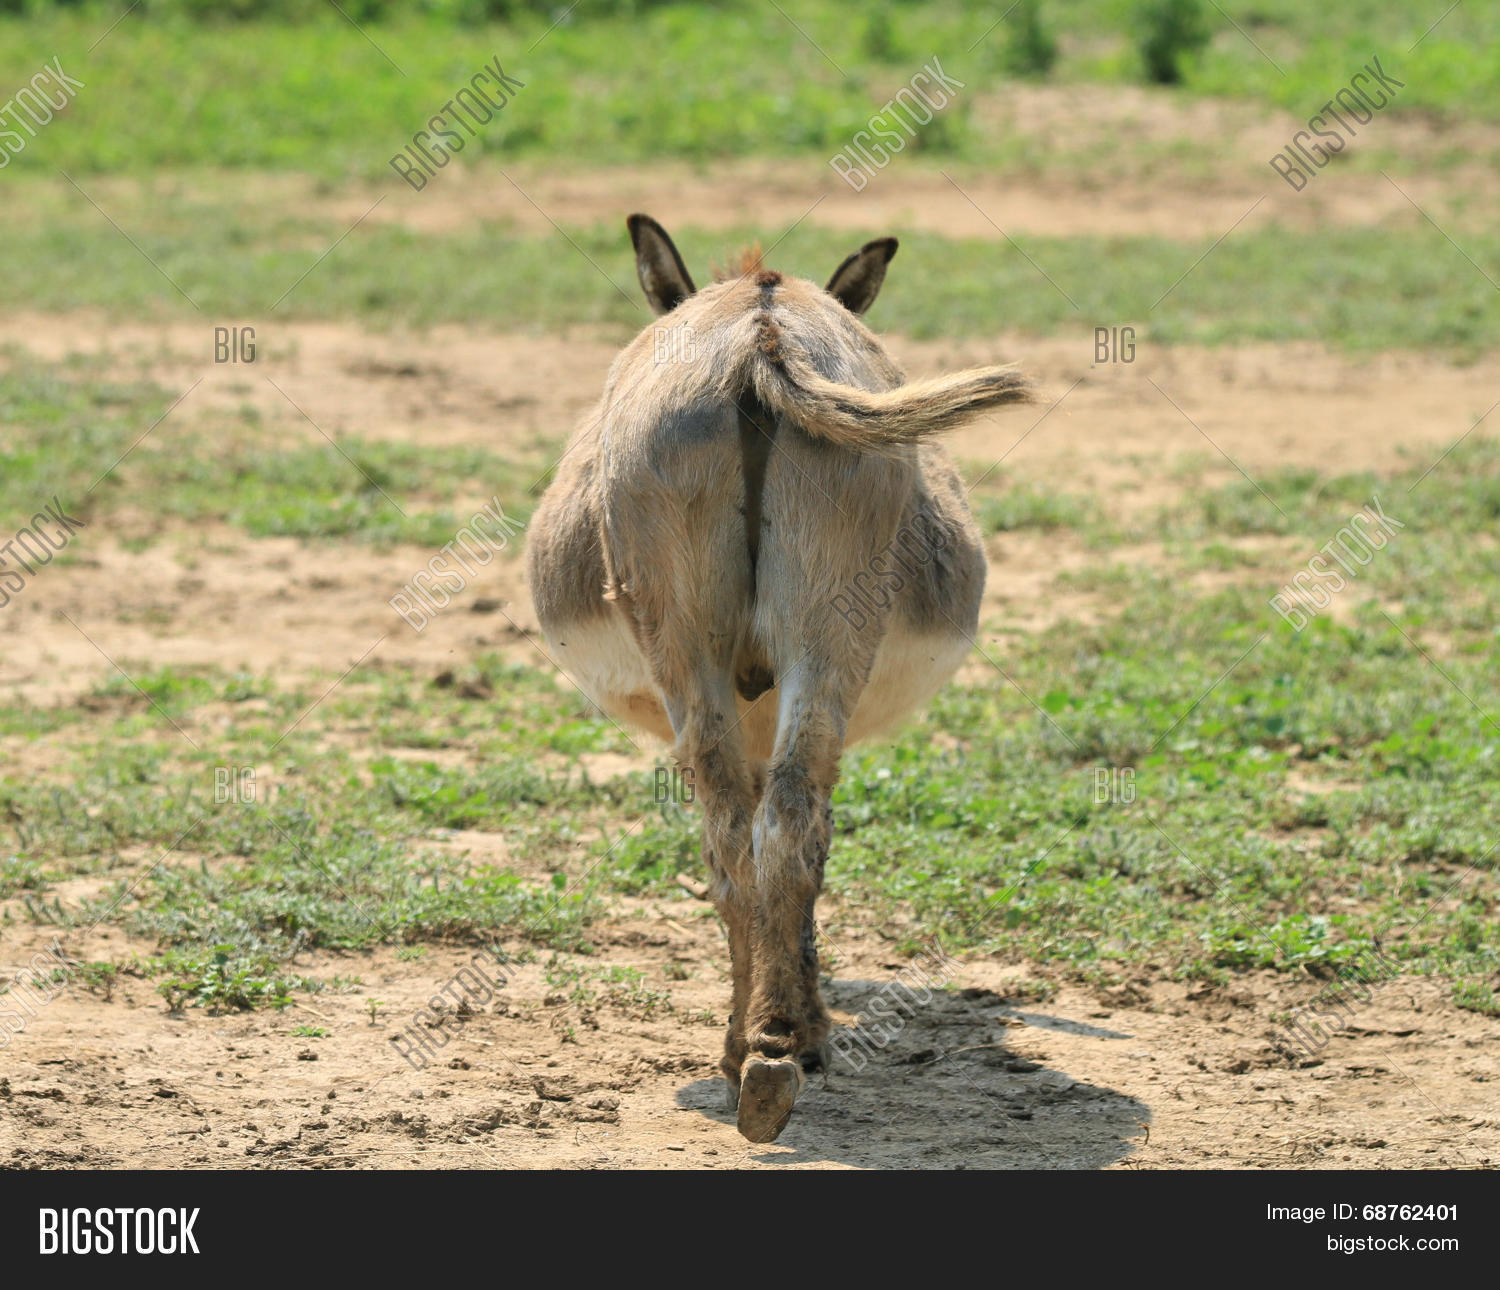 donkey s butt image photo free trial bigstock